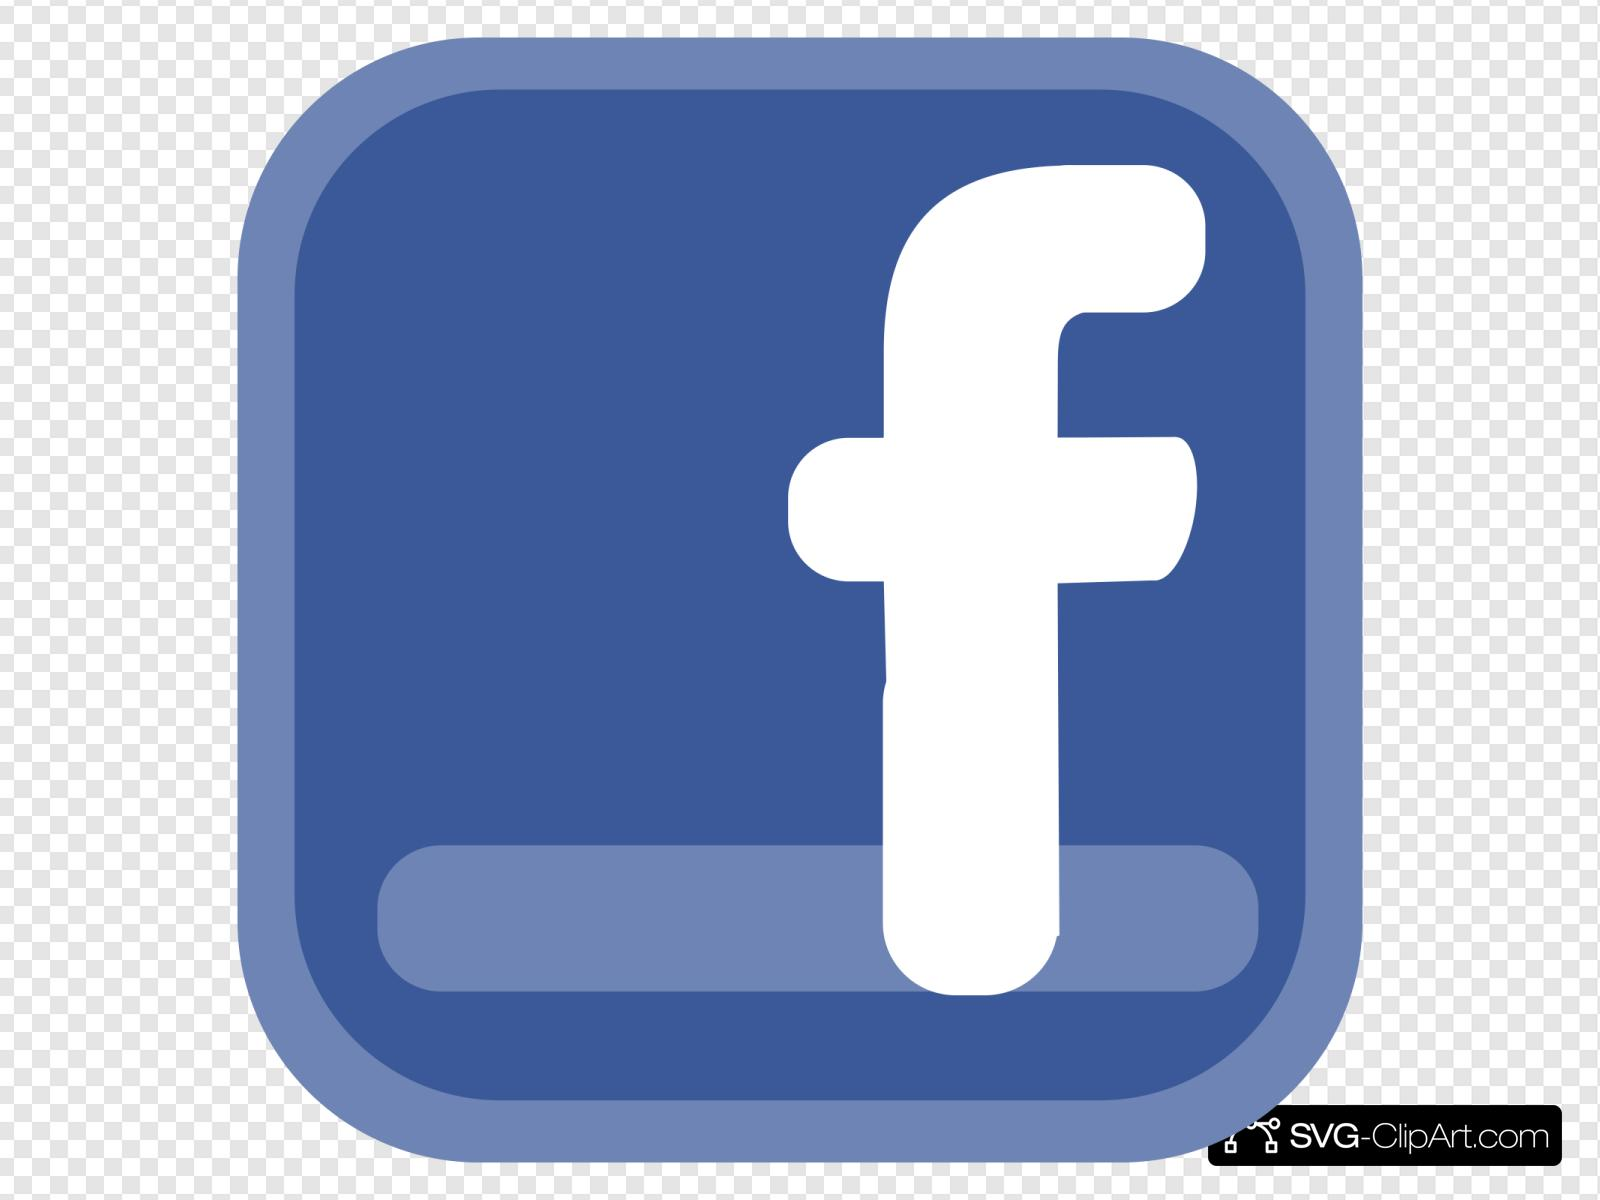 Facebook clipart svg. Icon clip art and